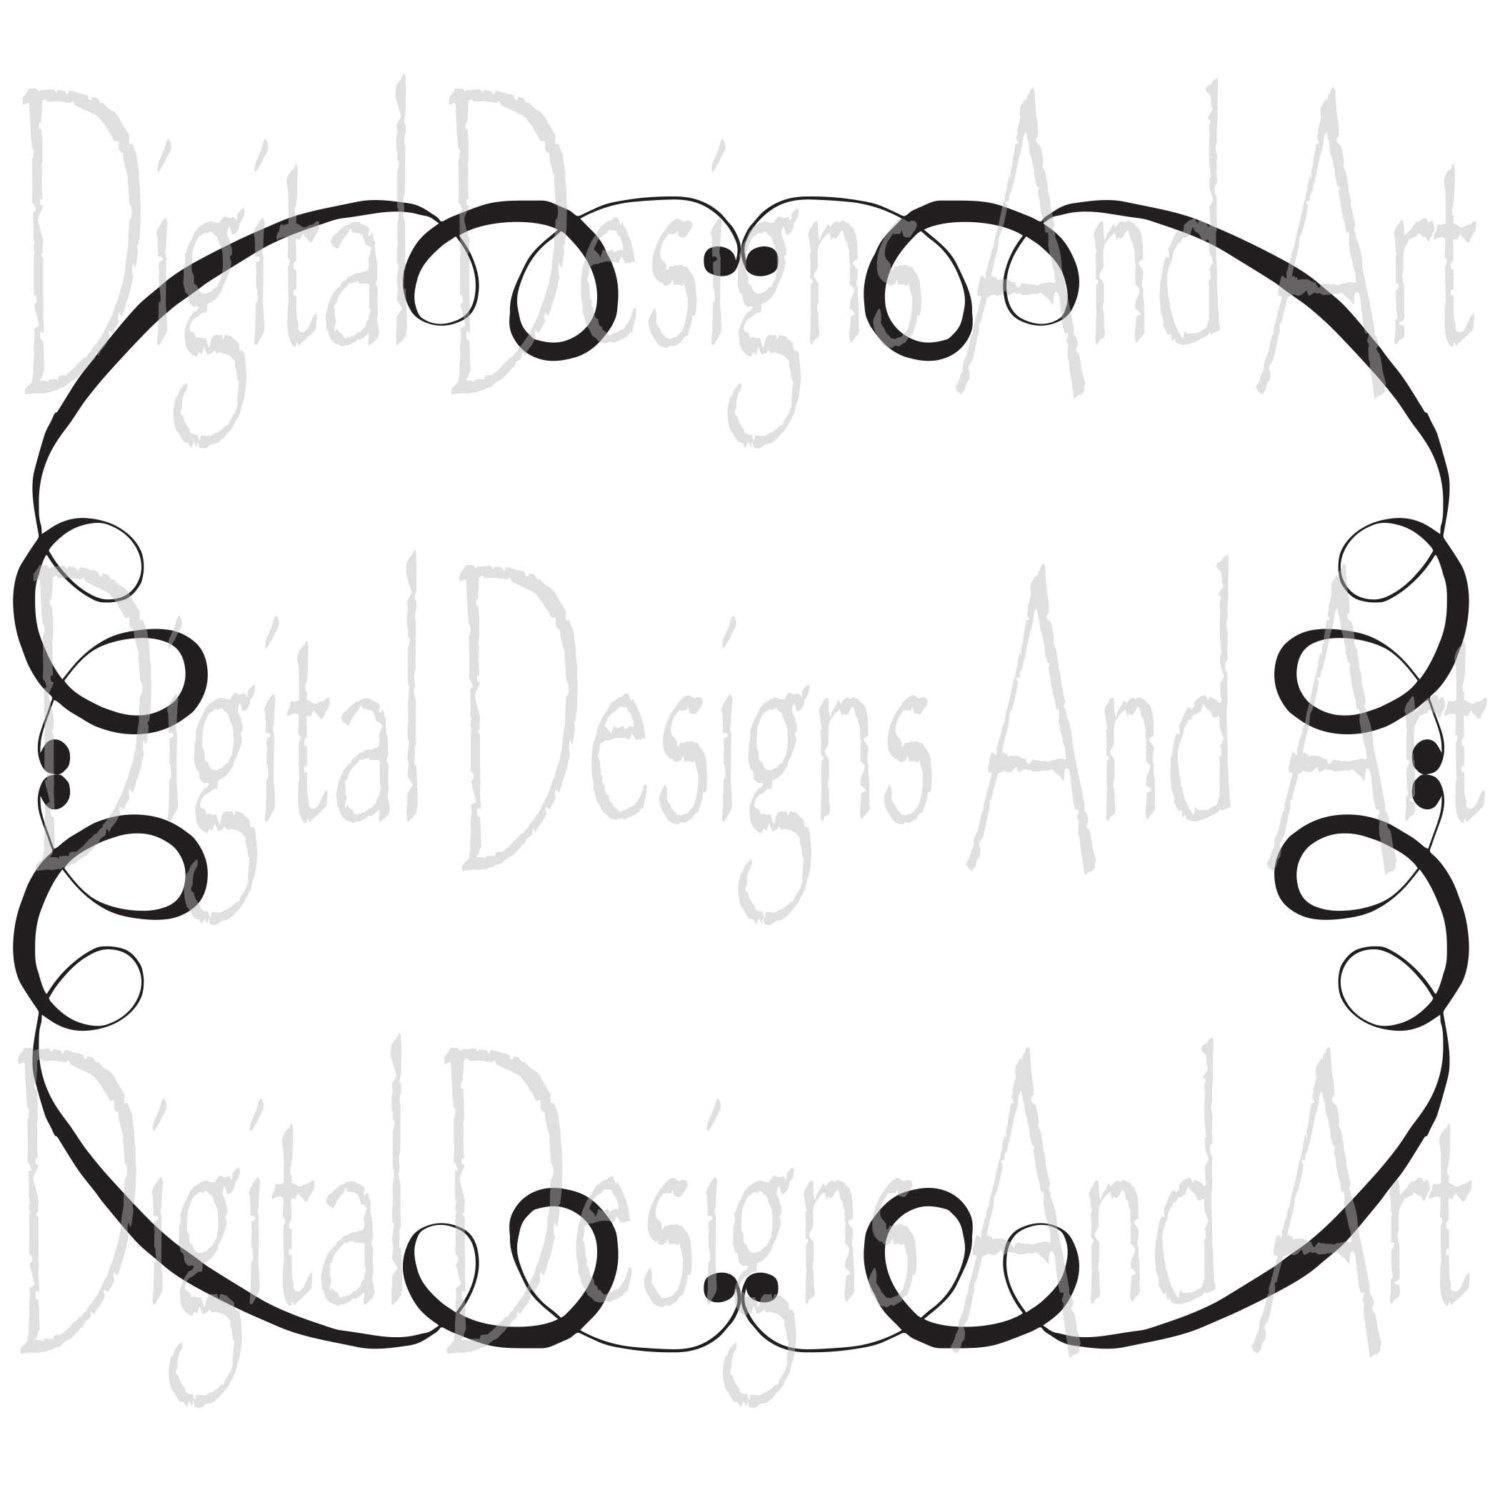 1500x1500 Digital Wedding Frames, Digital Frame, Weding Clipart, Digital